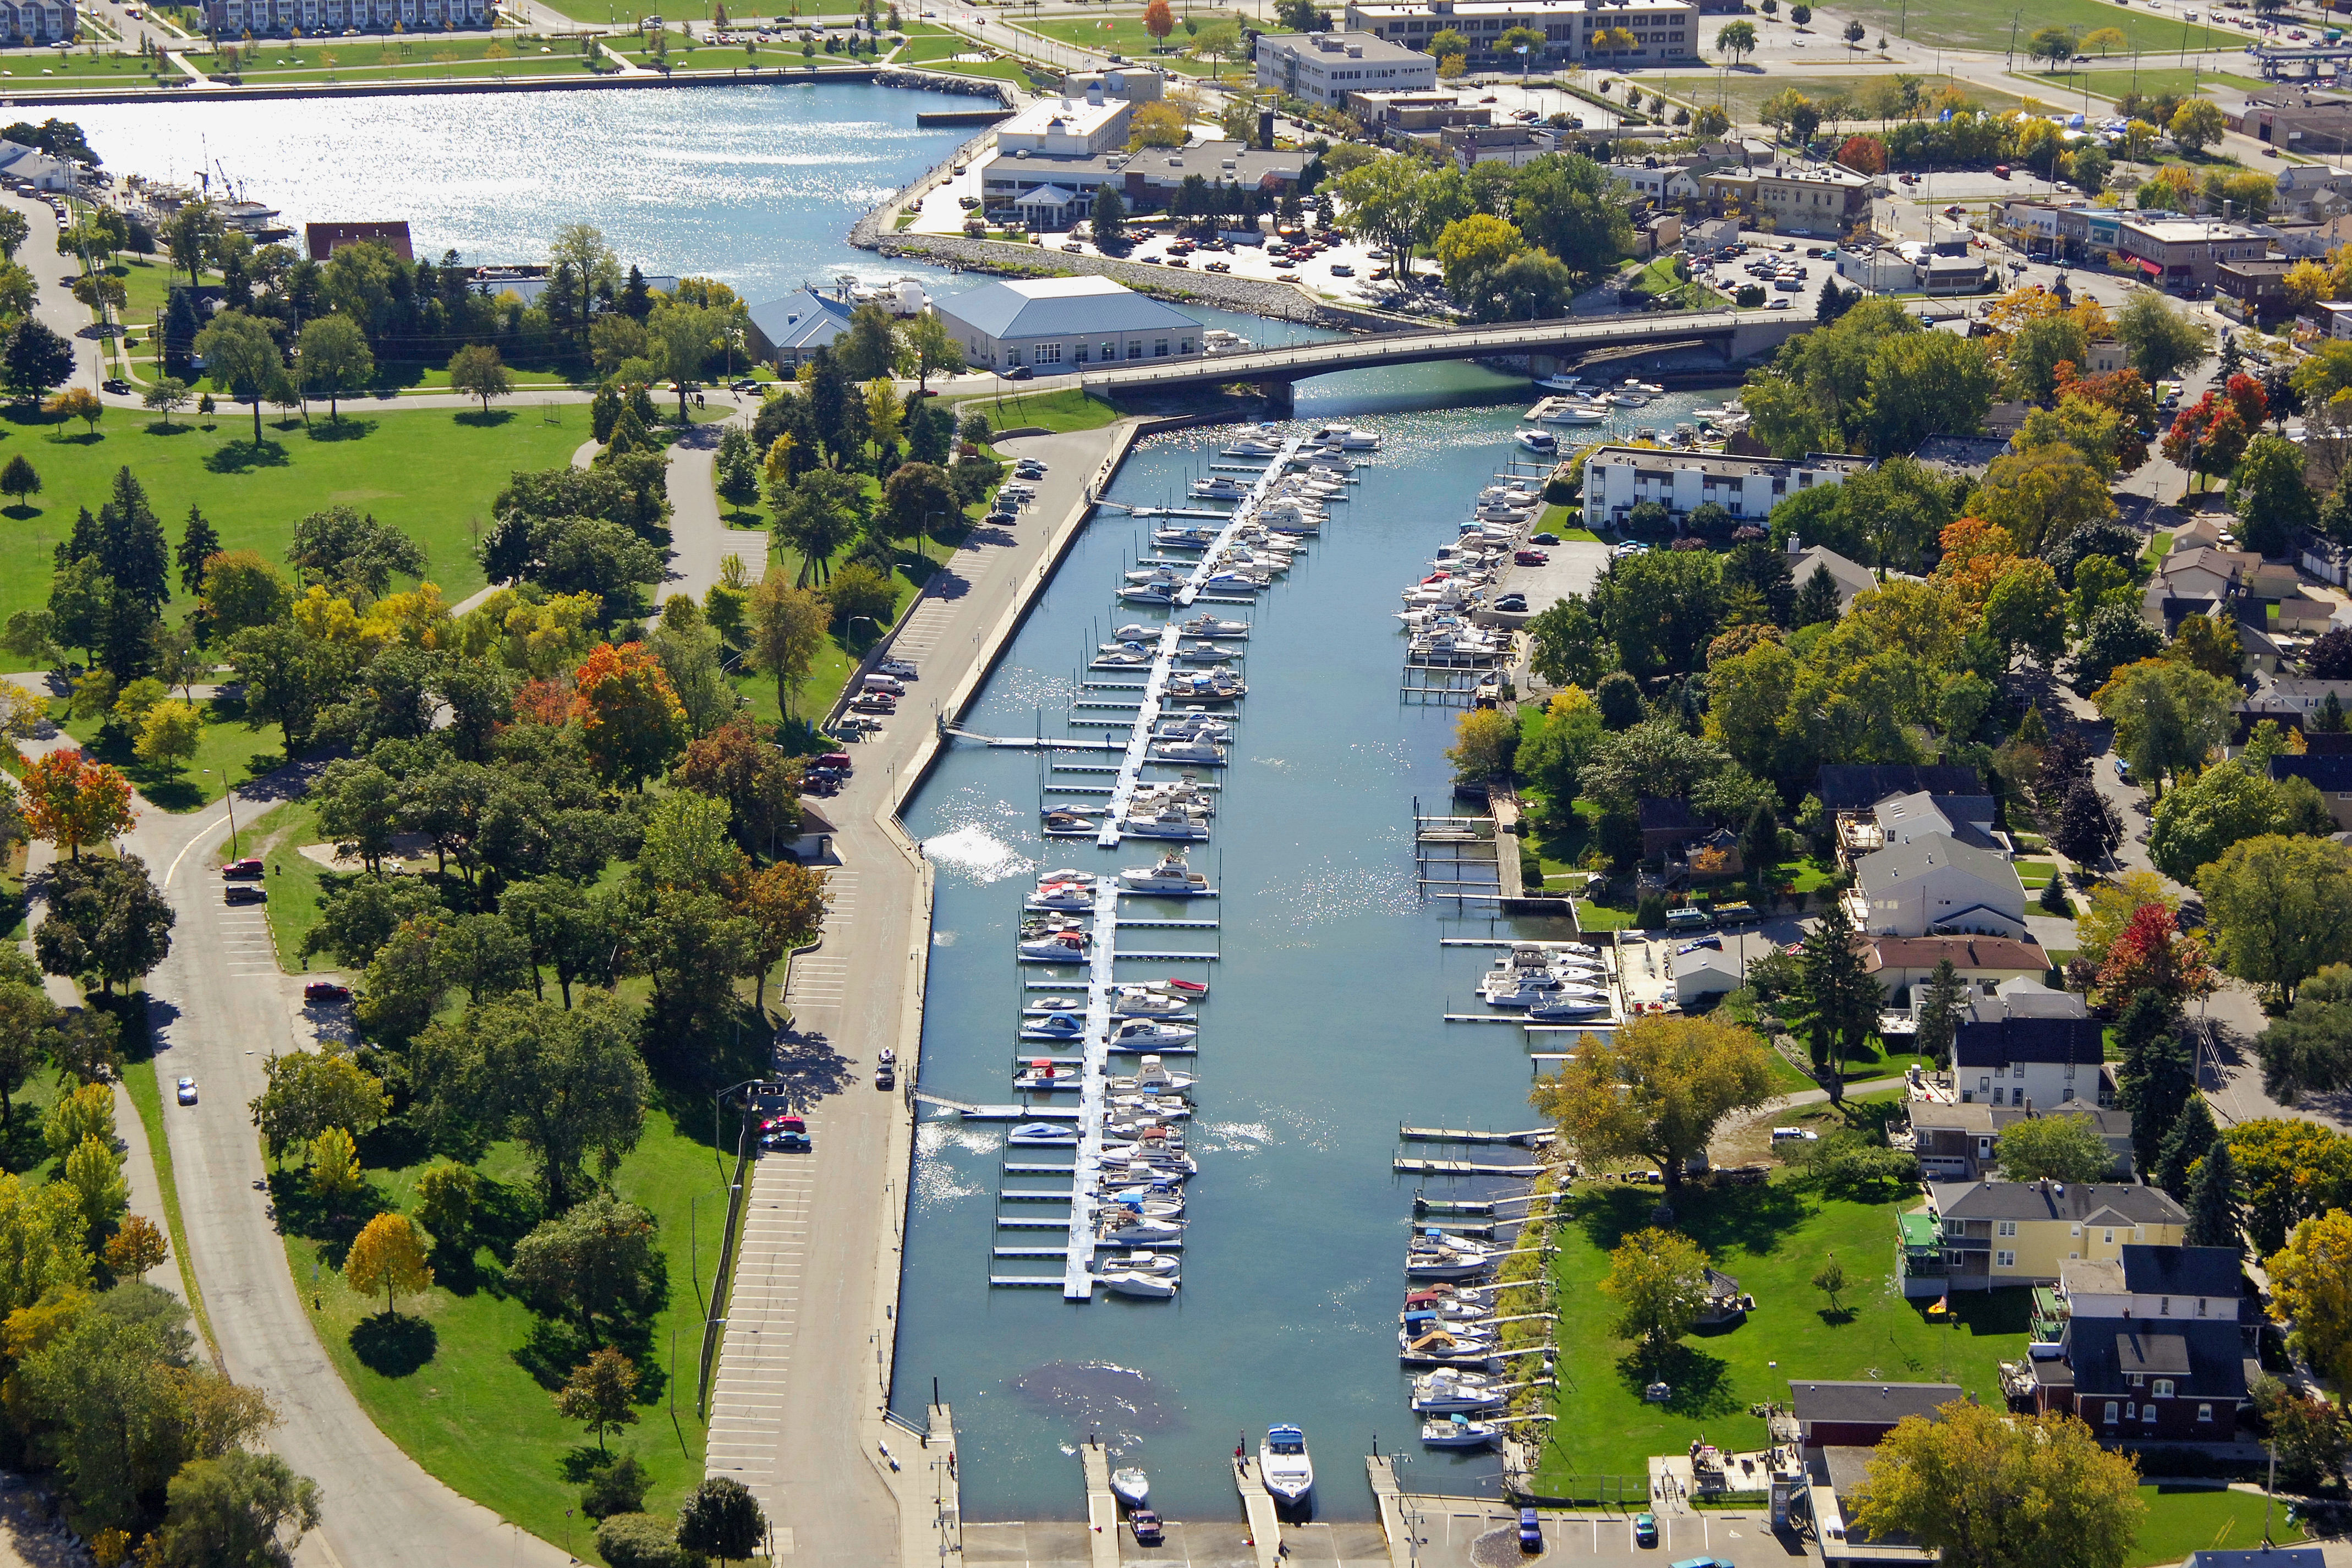 Best Hotels Near Simmons Island Beach Kenosha Wisconsin